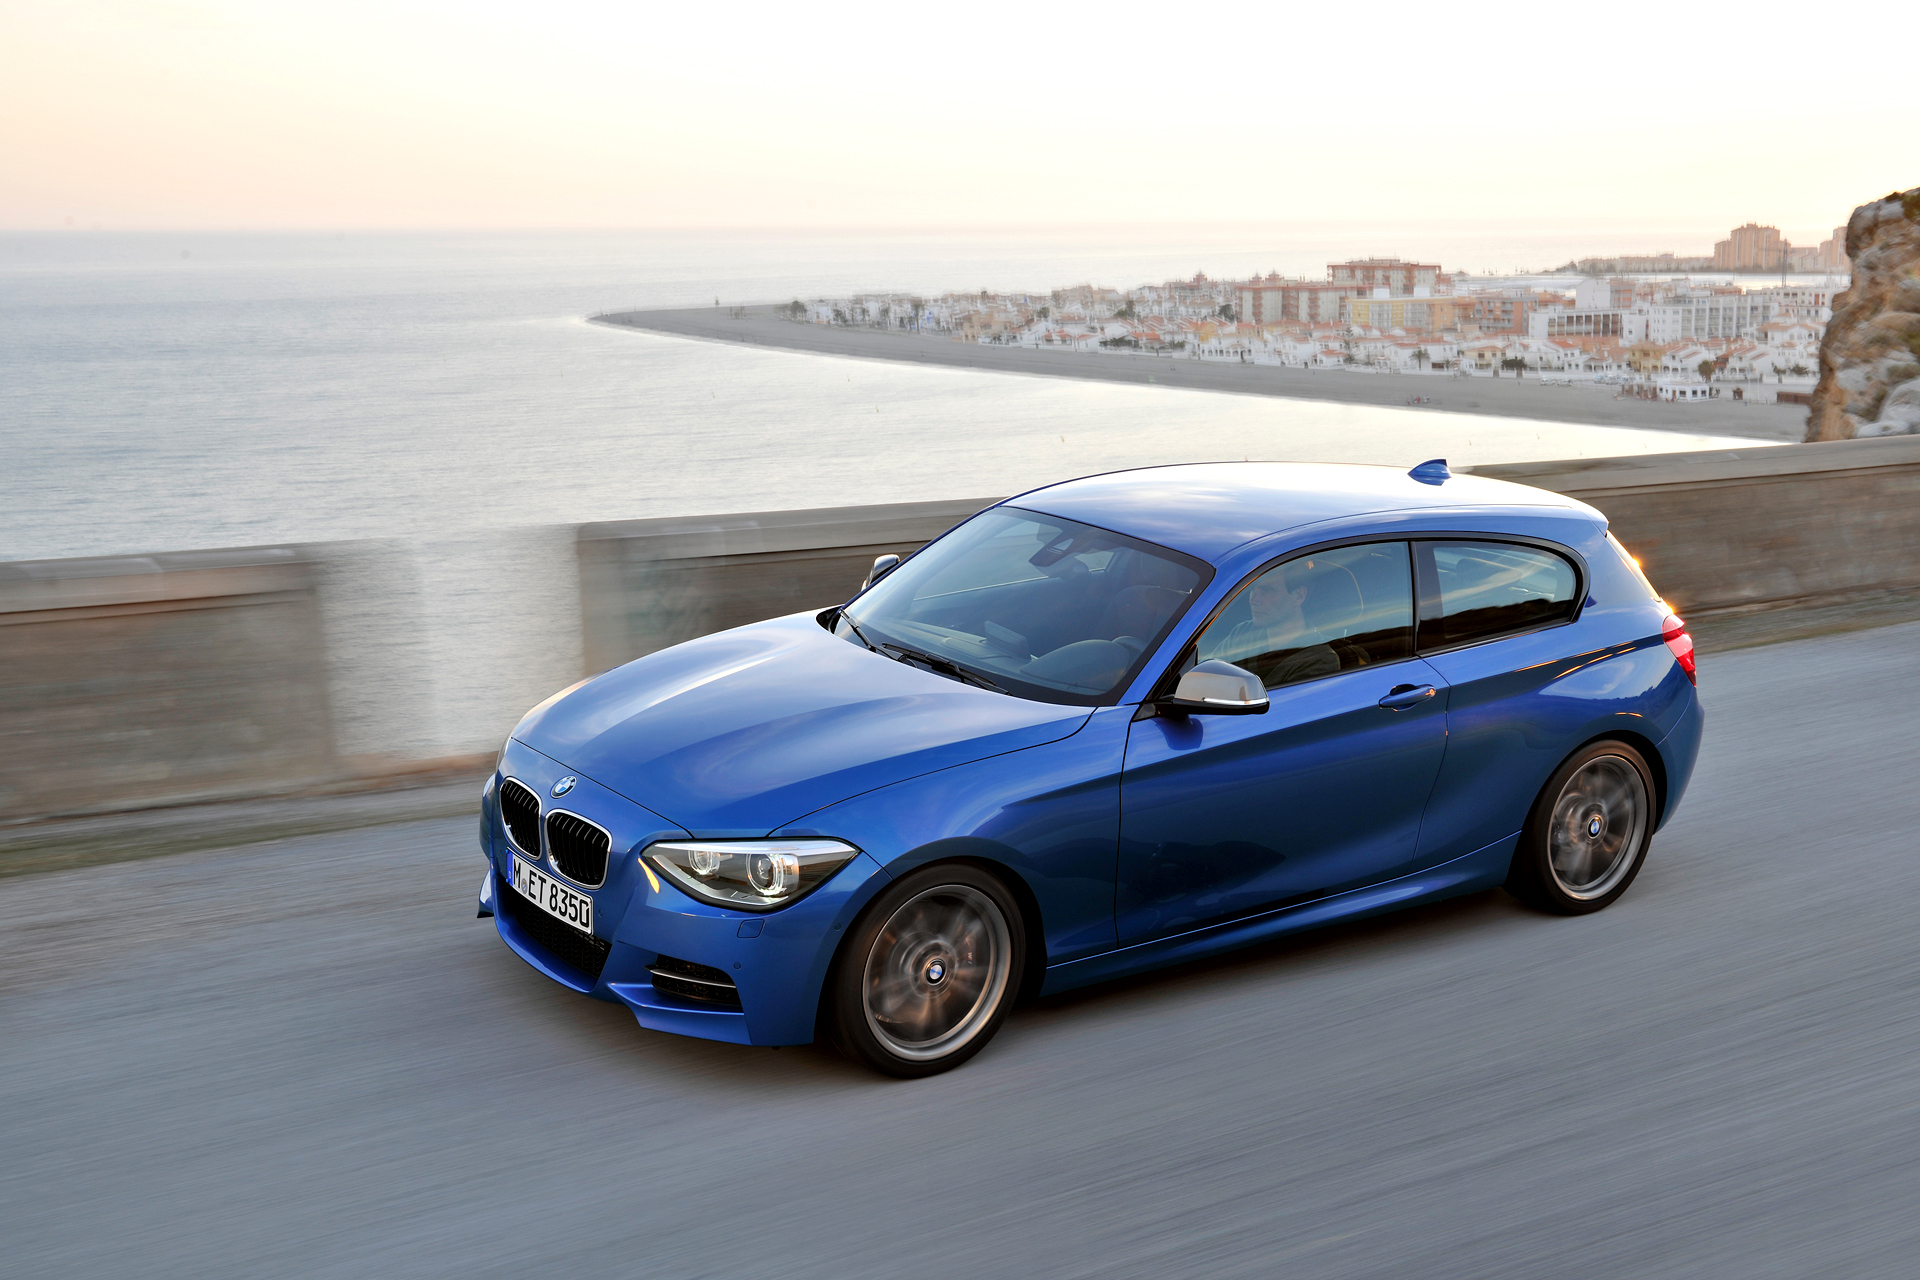 bmw 1 series changes as of 2012 july production. Black Bedroom Furniture Sets. Home Design Ideas